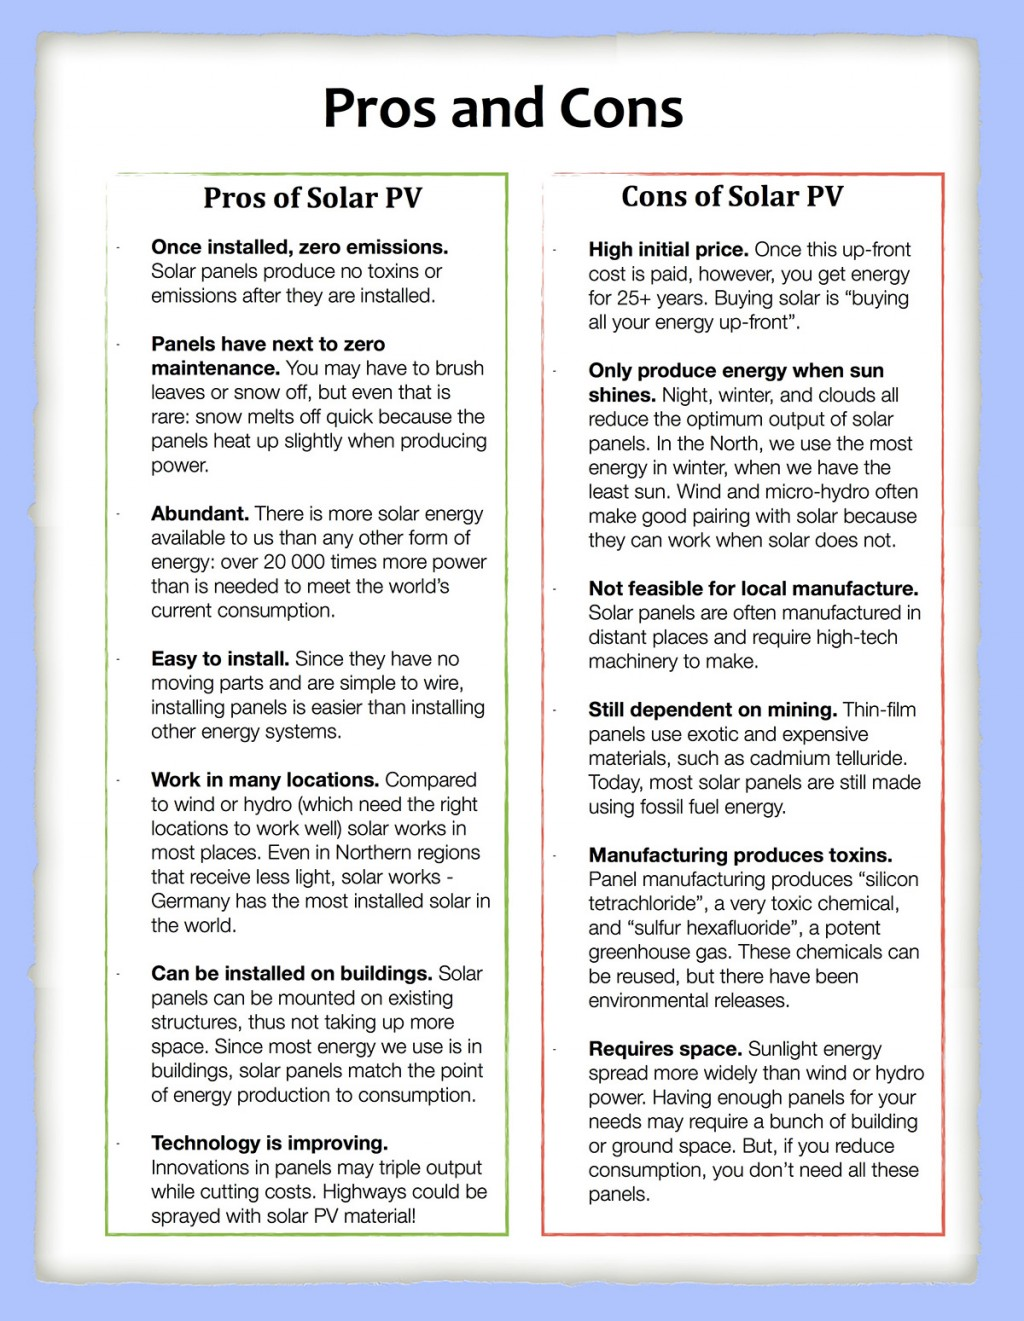 006 Solarposter6 Euthanasia Pros And Cons Essay Magnificent Large